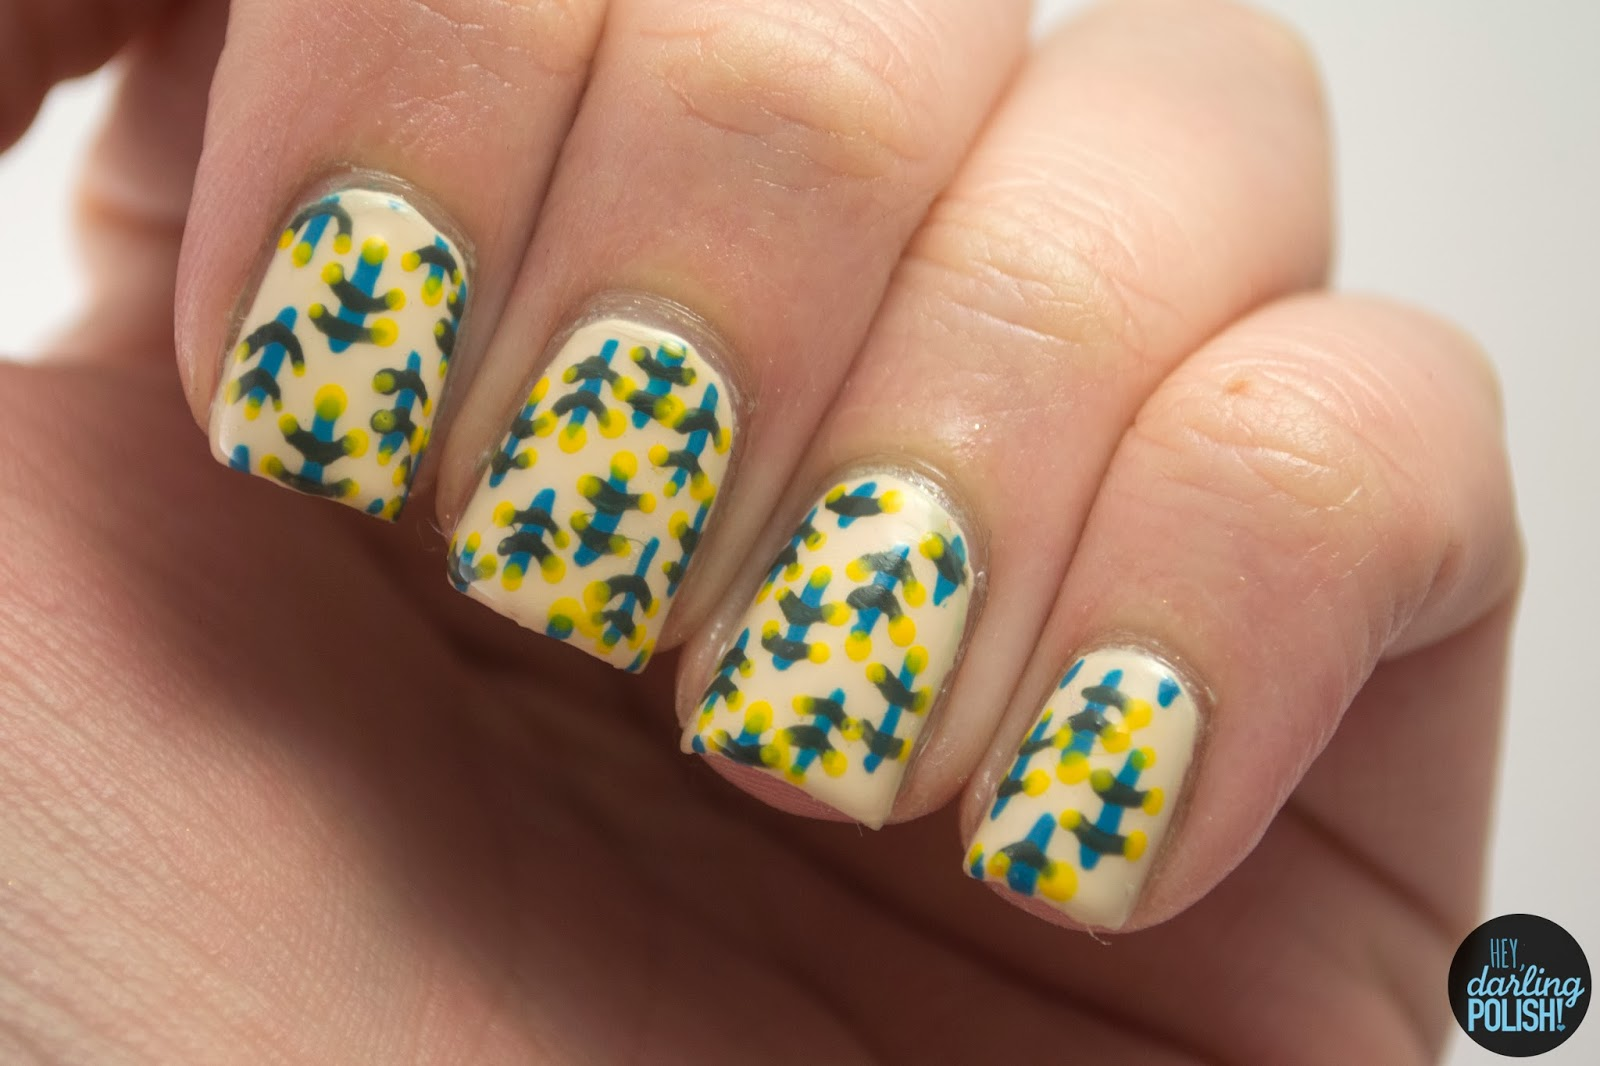 nails, nail art, nail polish, polish, pattern, retro, hey darling polish